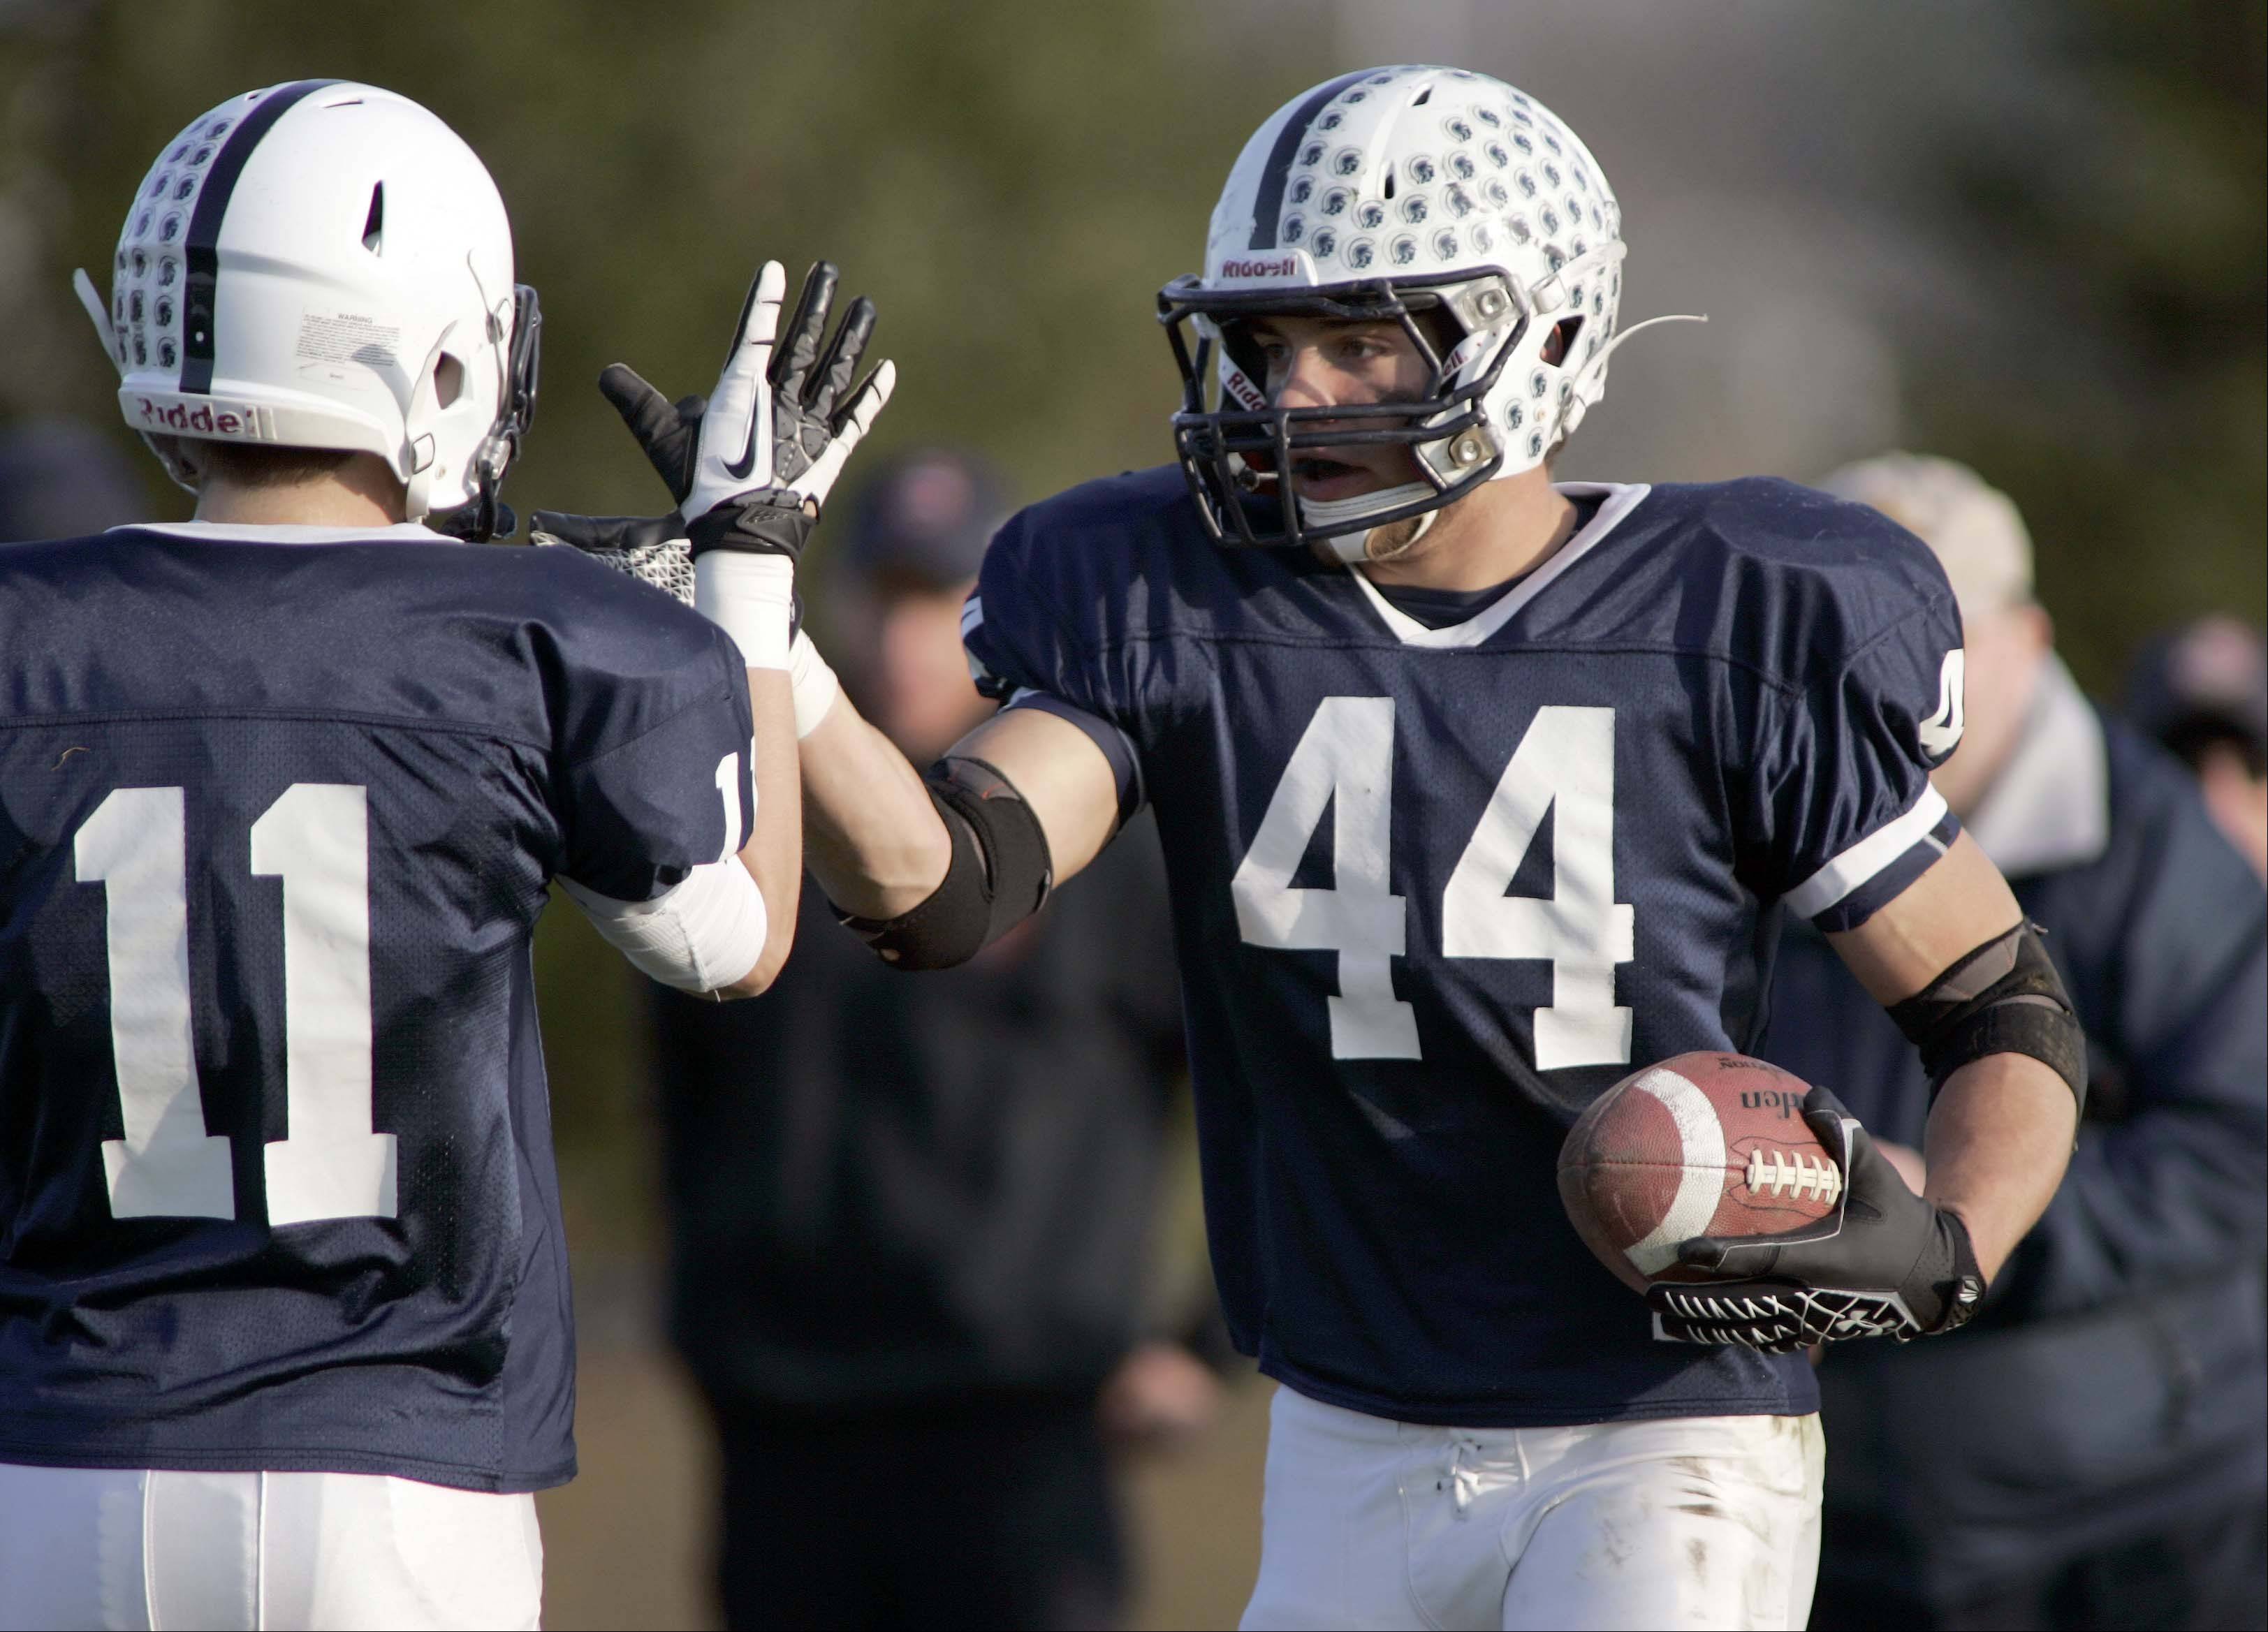 Cary-Grove's Kyle Norberg (44) is greeted by teammate Patrick Snell after scoring one of his touchdowns during the Trojans' 41-7 Class 6A playoff win over Rockford Auburn in Cary Saturday.